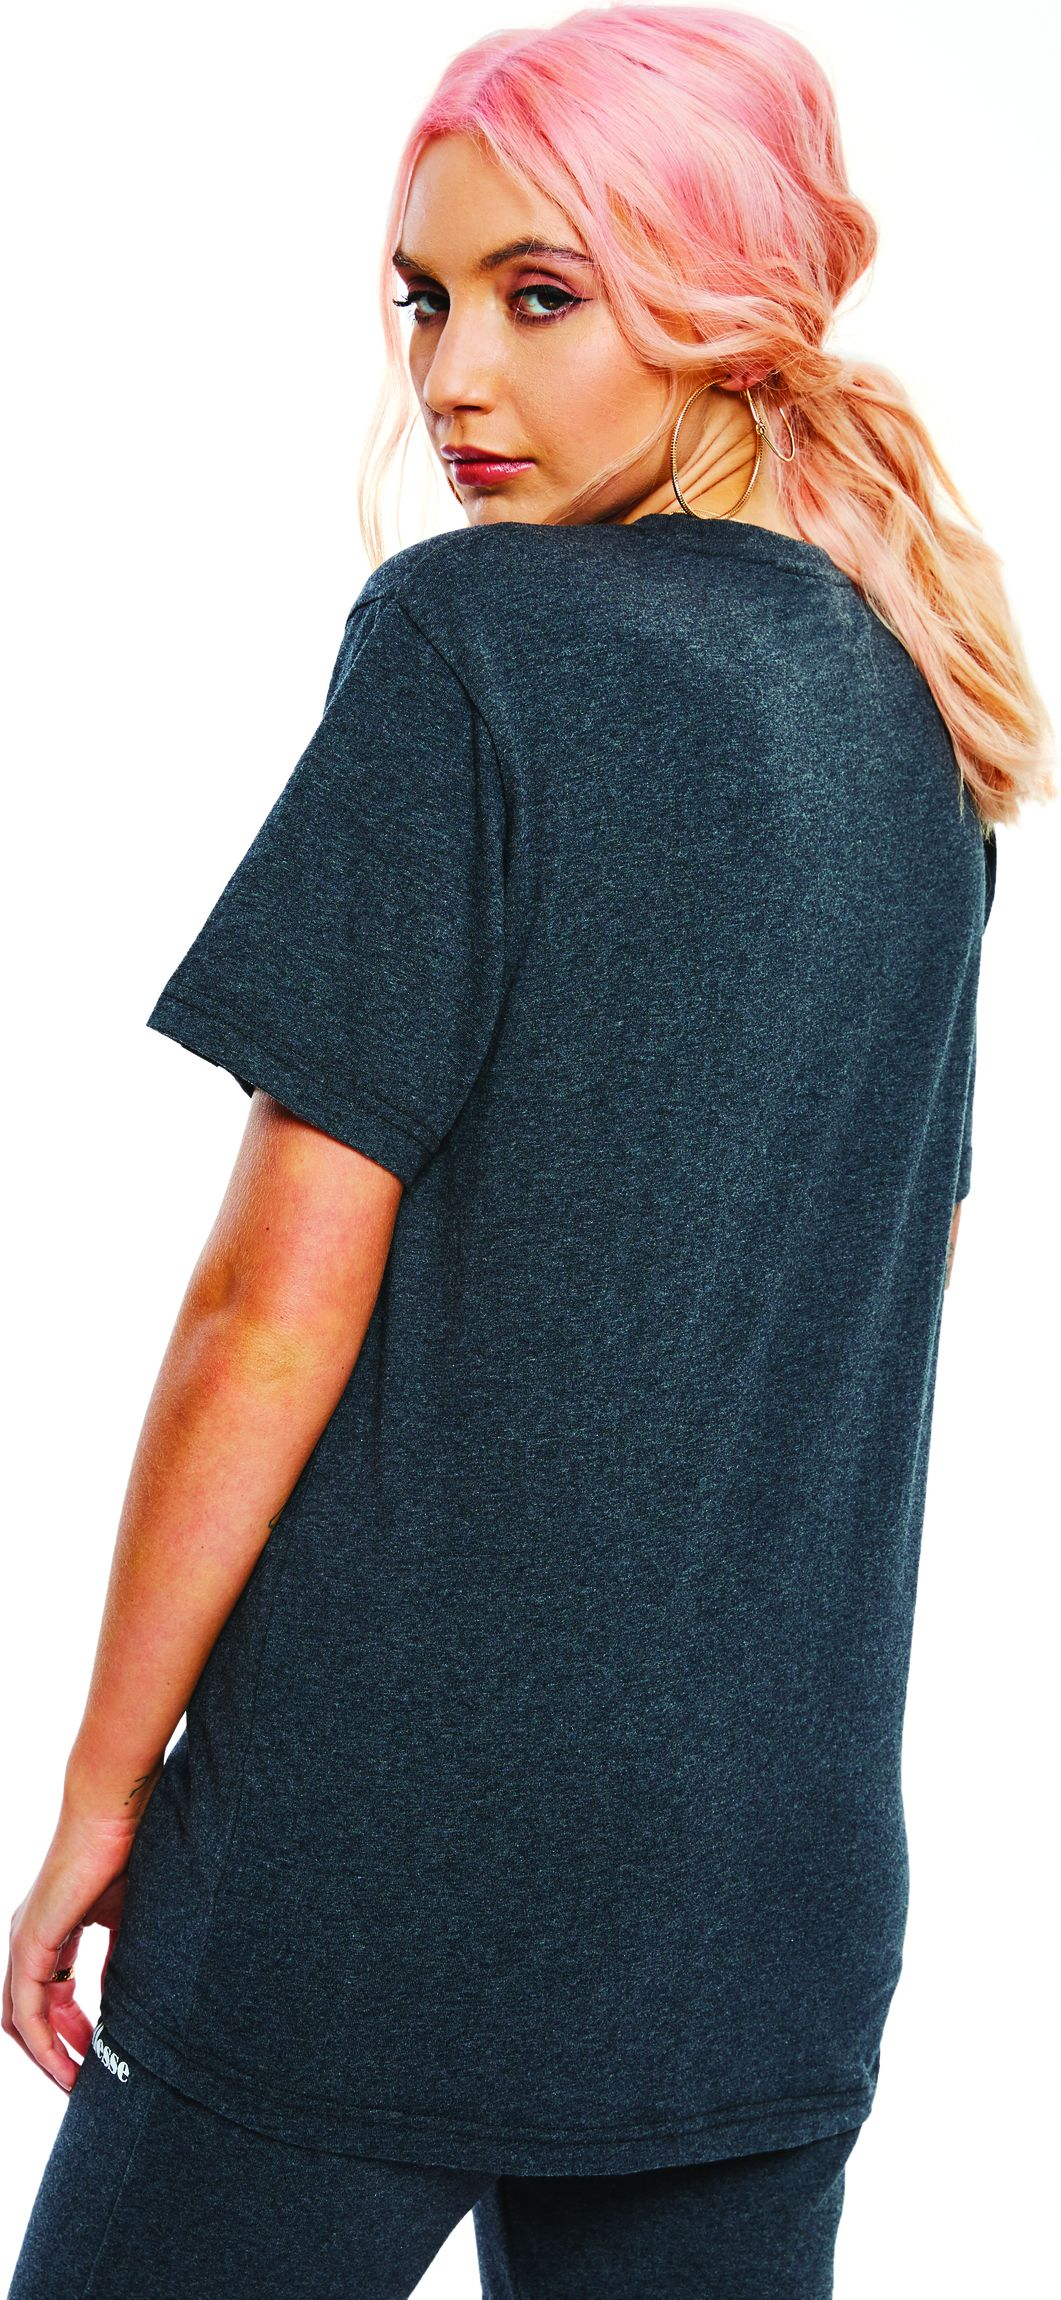 Ellesse-T-Shirts-amp-Tops-Women-039-s-Assorted-Fit-Styles thumbnail 7